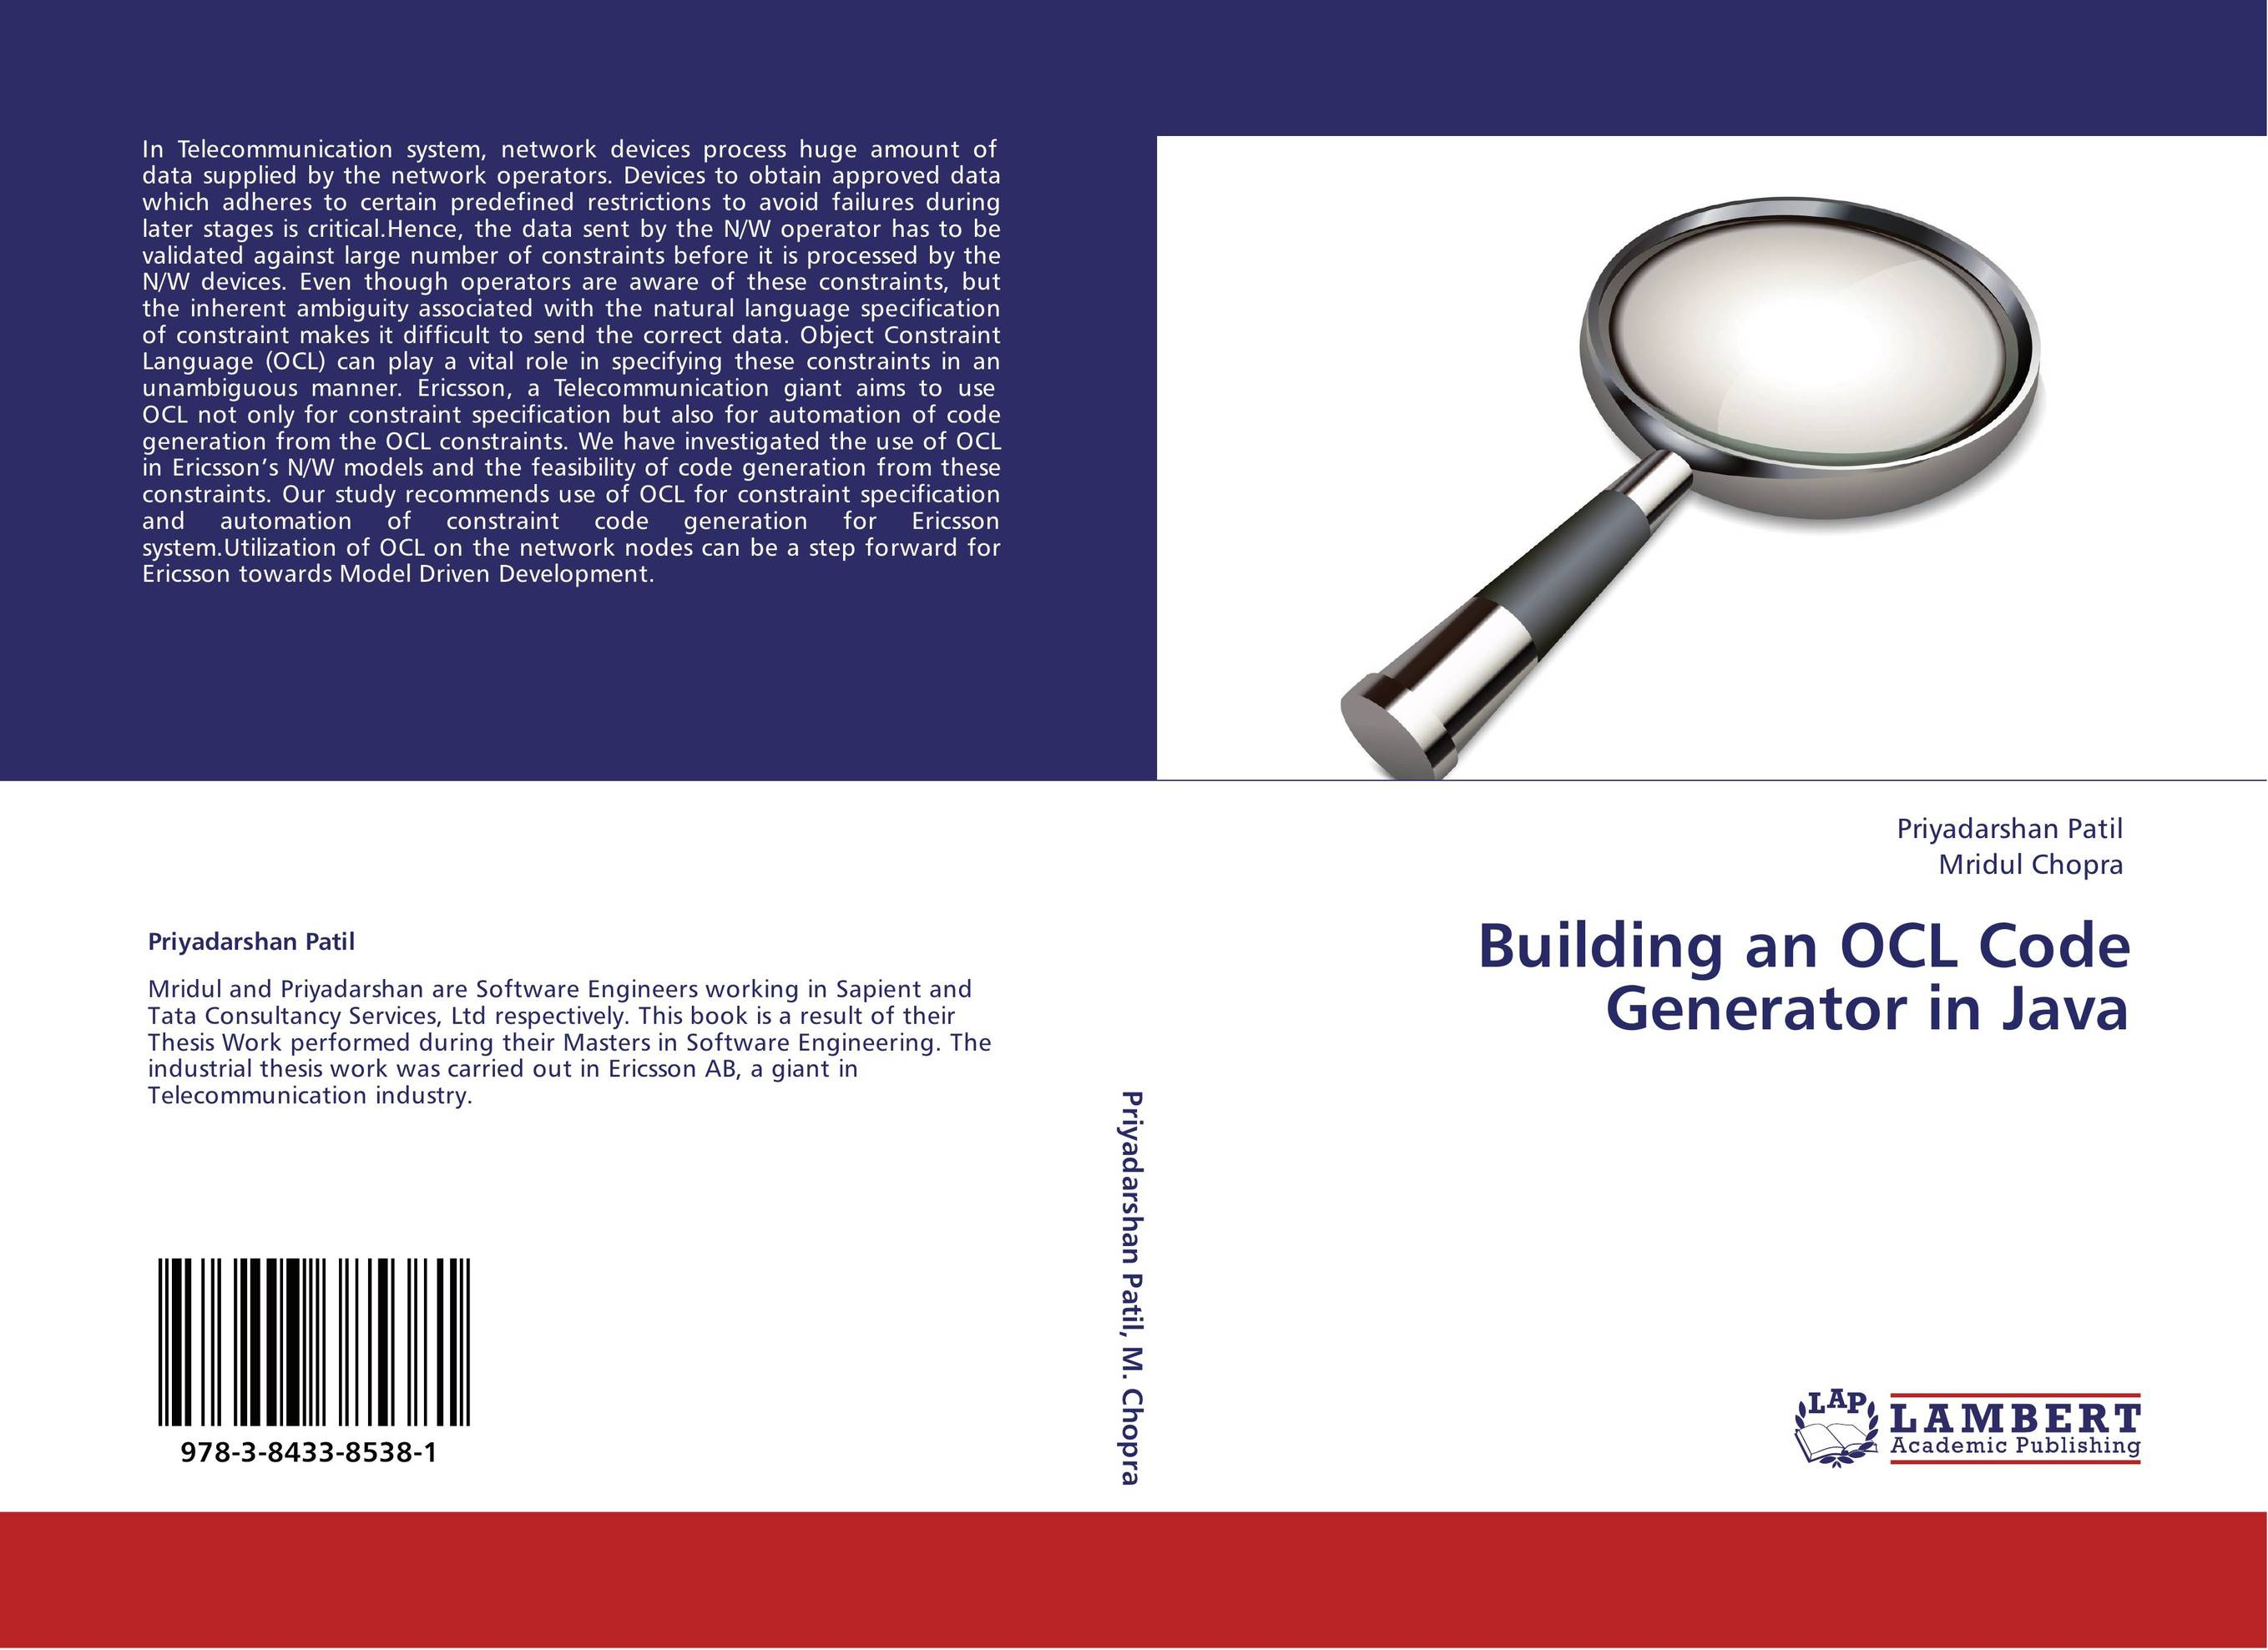 thesis code generator Thesis and code provides assistance for implementing the problems specifically from the domain of computer science and information technology using different software such as matlab, ns2, java/j2ee and simulink.